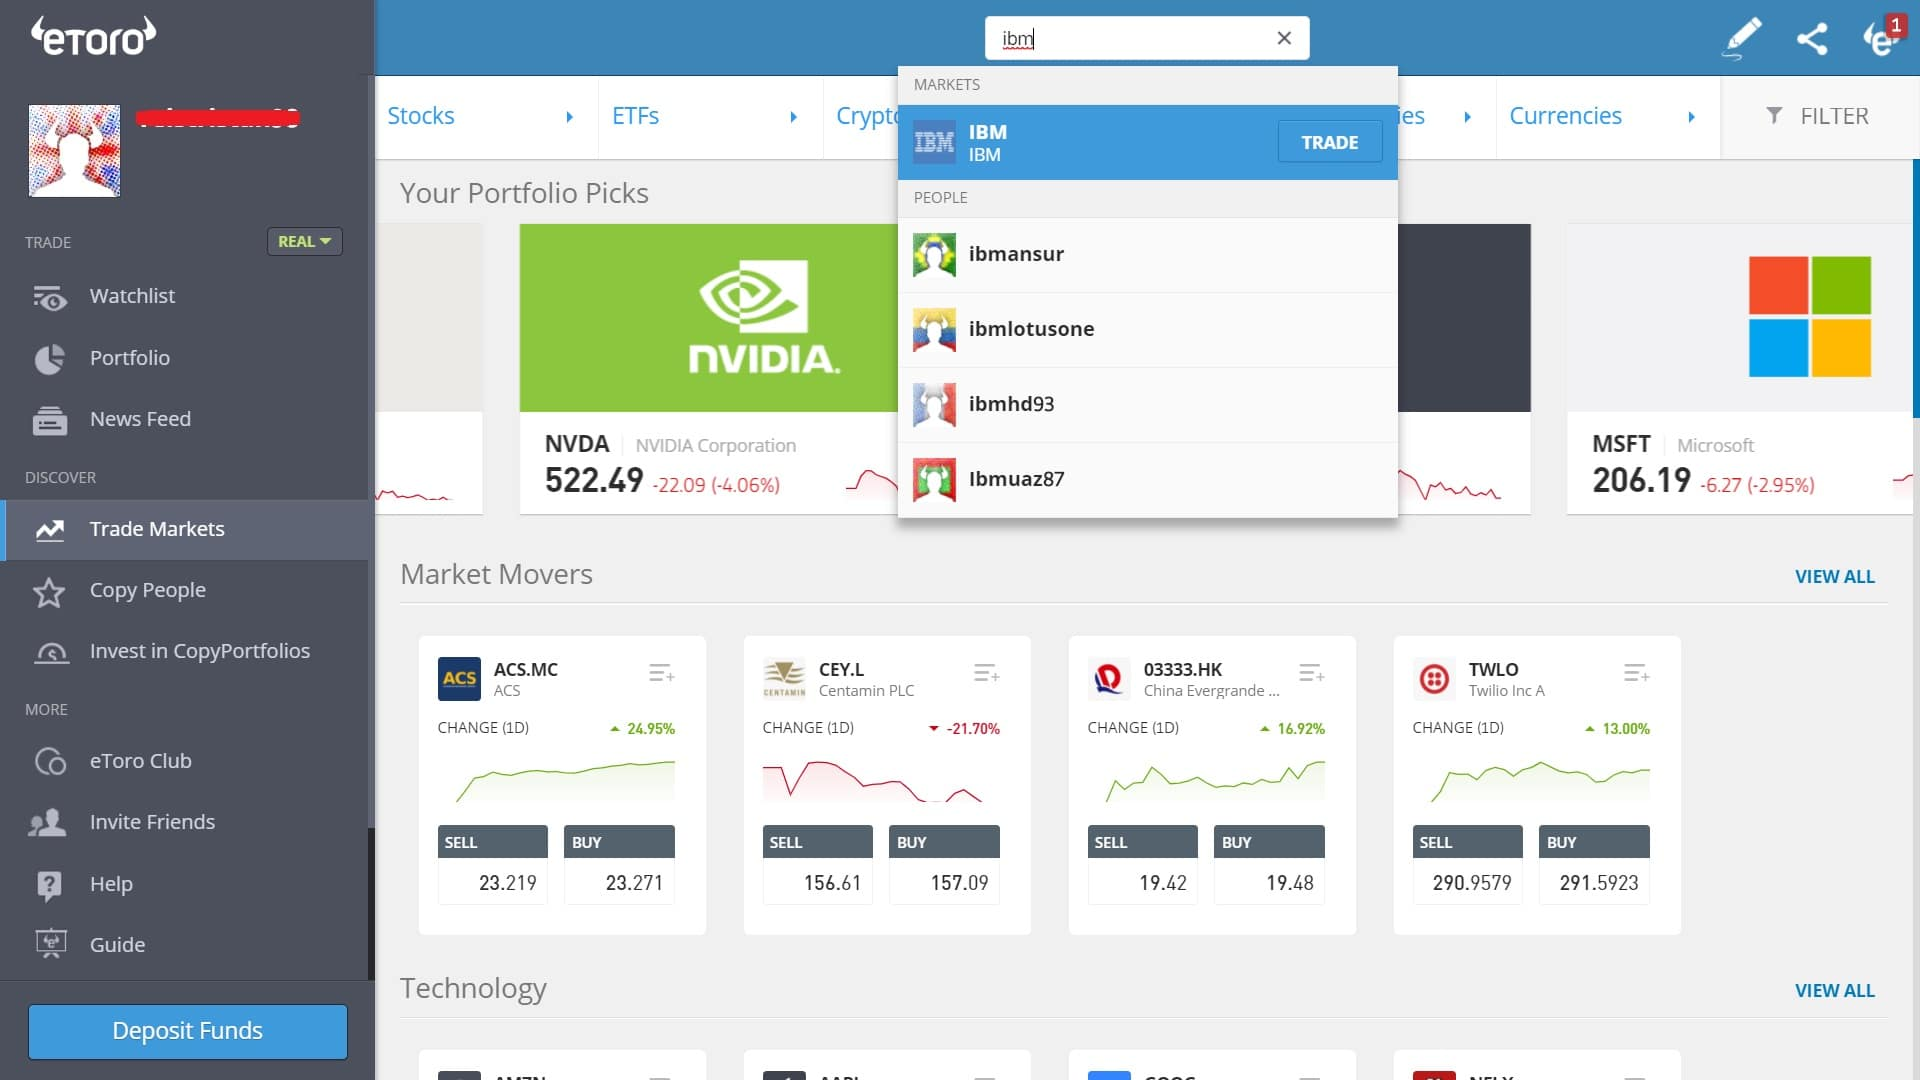 Searching for IBM stock on eToro's platform